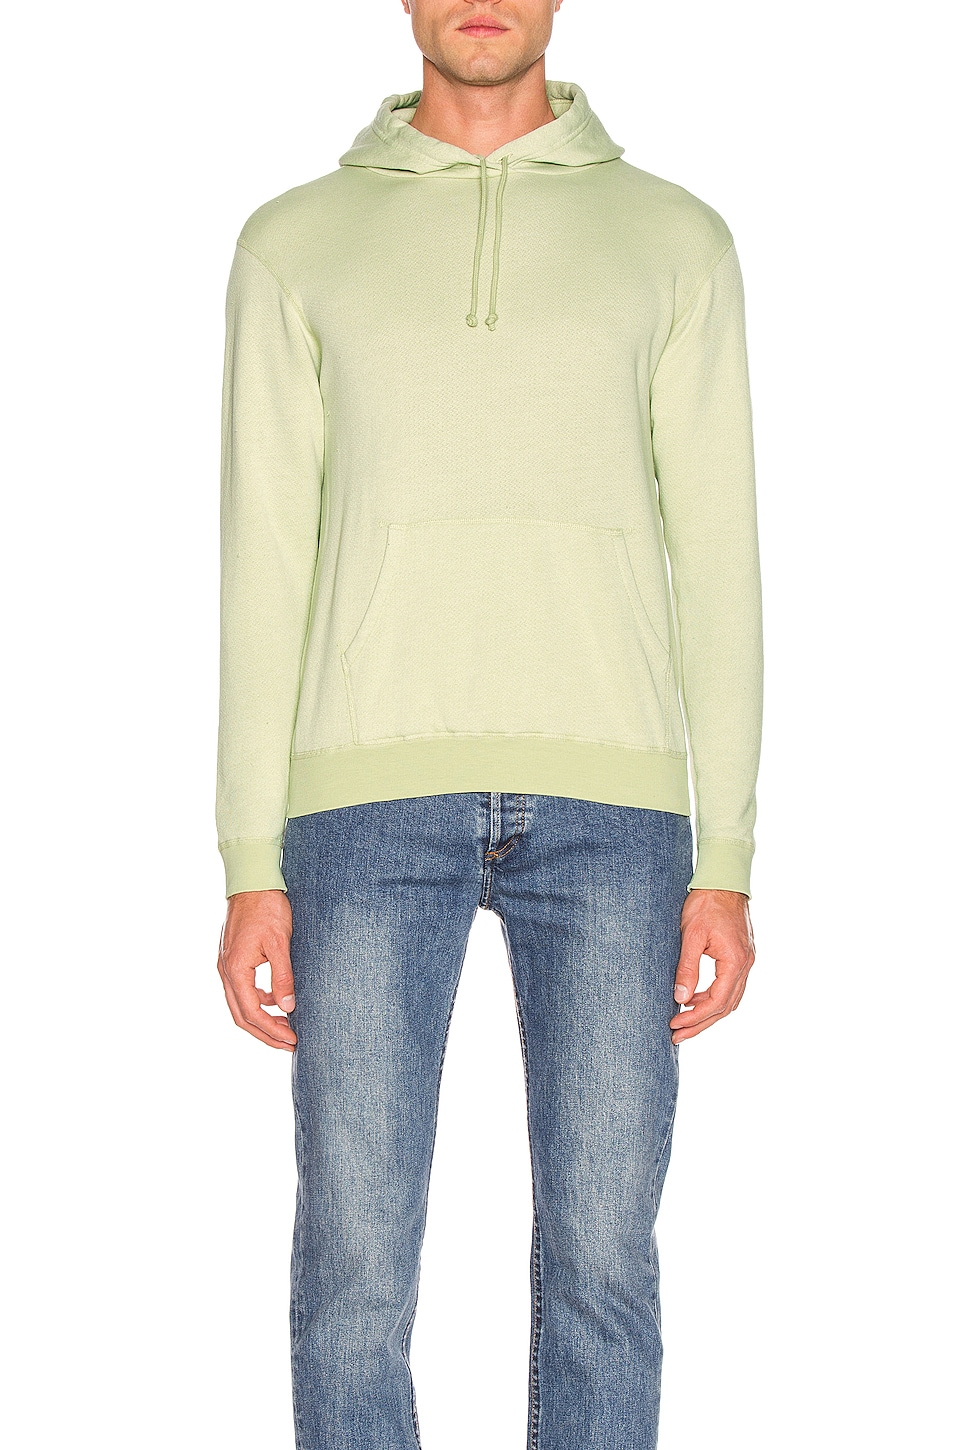 JOHN ELLIOTT Vintage Fleece Hoodie in Mint Green